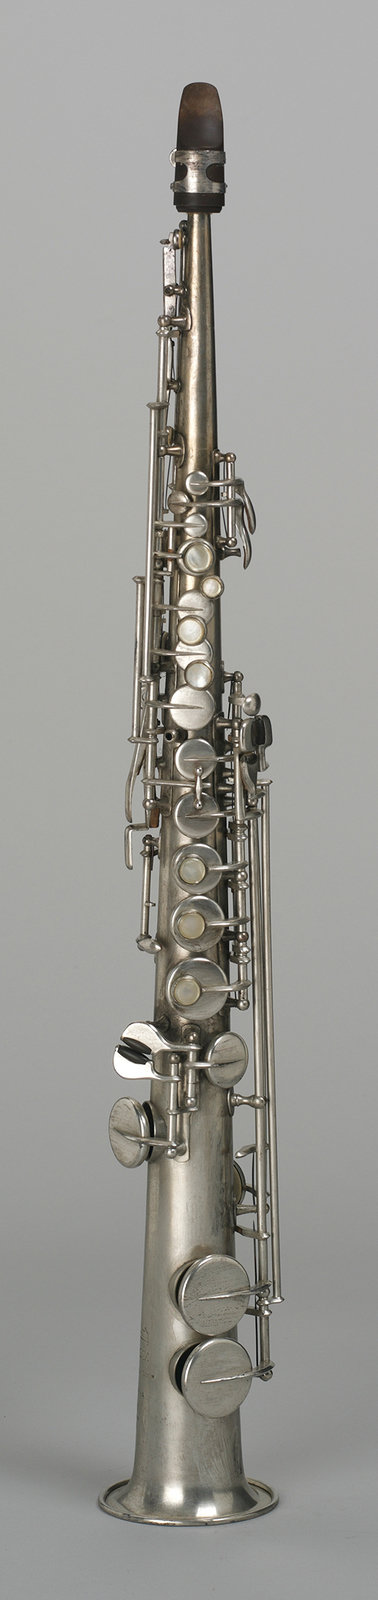 "Sopransaxophon, Adolphe Sax Company, [Although Adolphe Sax is best known for his patent for the Saxophone in 1846 the instrument's importance for the lower voices of military music, he conceived the saxophone family in sizes from sub-contrabass up to soprano. Today, with the sopranino saxophone and the ""Soprillo"", there are two even smaller sizes. The instrument shown here represents the smallest size conceived by Sax himself. While Sax attributed to the saxophones a sound close to bowed string instruments, but much louder, Belioz characterised the sound as penetrating, but without the shrill timbre of small clarinets.], Germanisches Nationalmuseum. Foto: Günther Kühnel, CC BY-NC-SA"